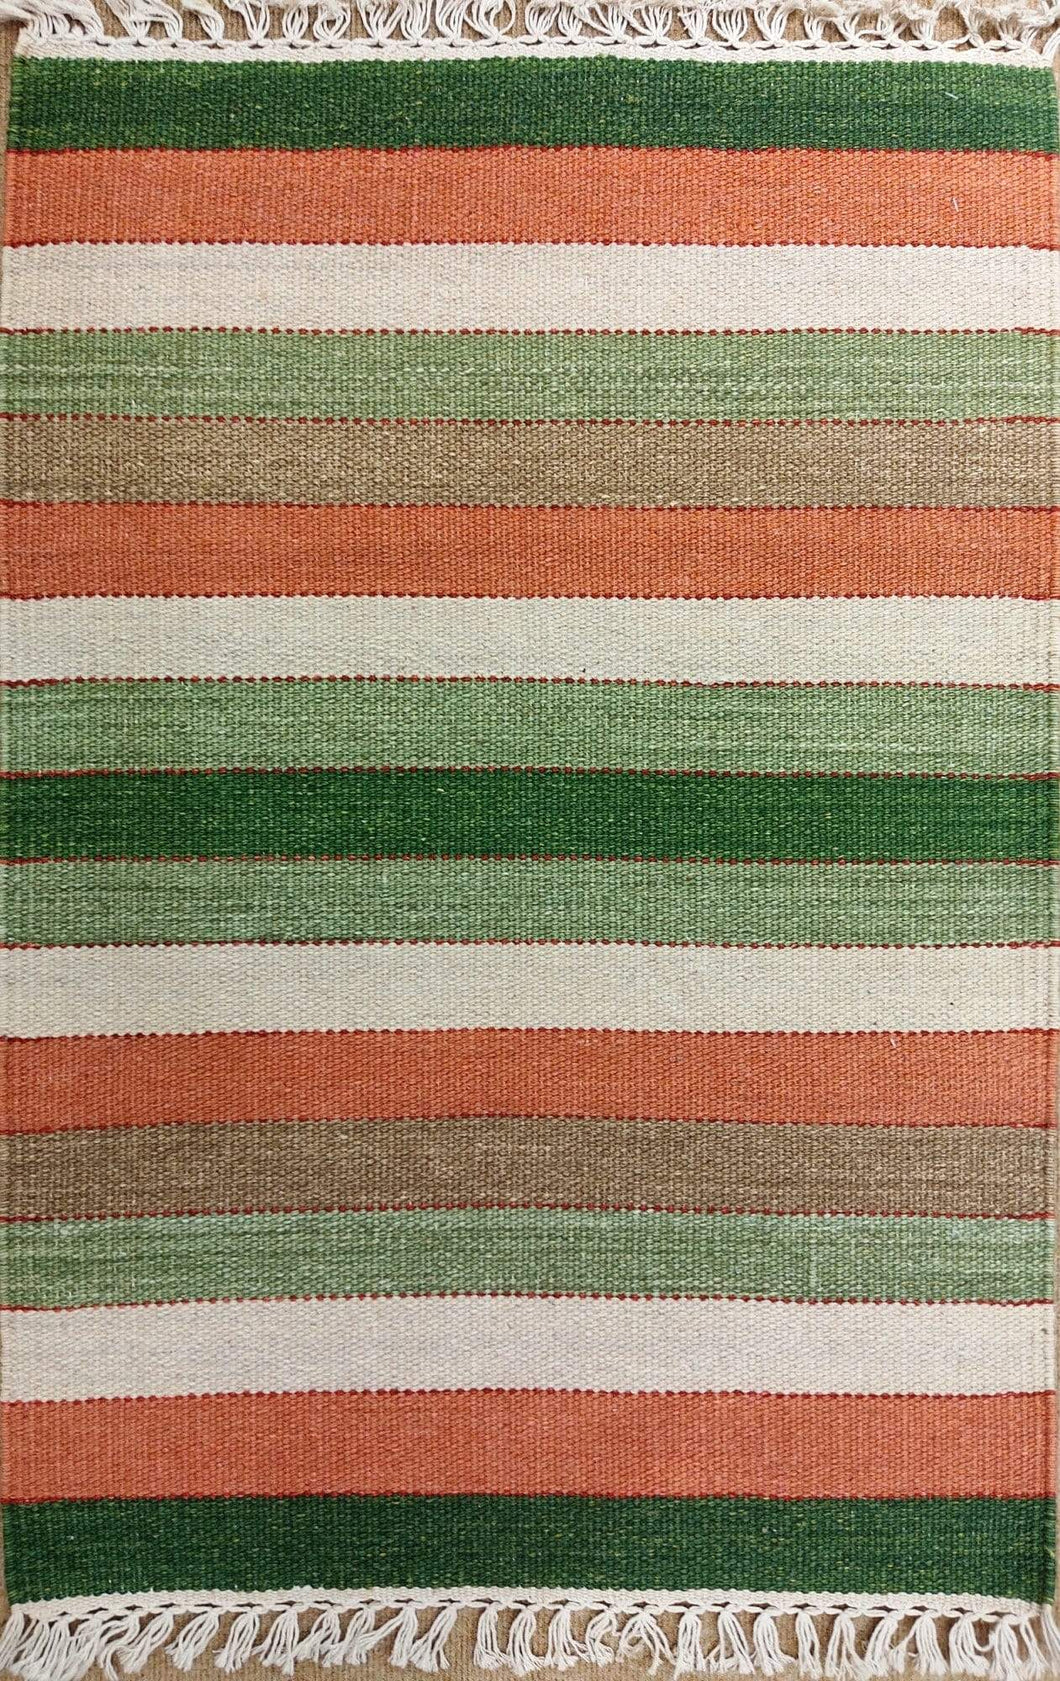 The Rugs Cafe Dhurries 2x3 / Multi Contemporary Linear Stripes Design Quality Rug - Multi Colored Handwoven Rug